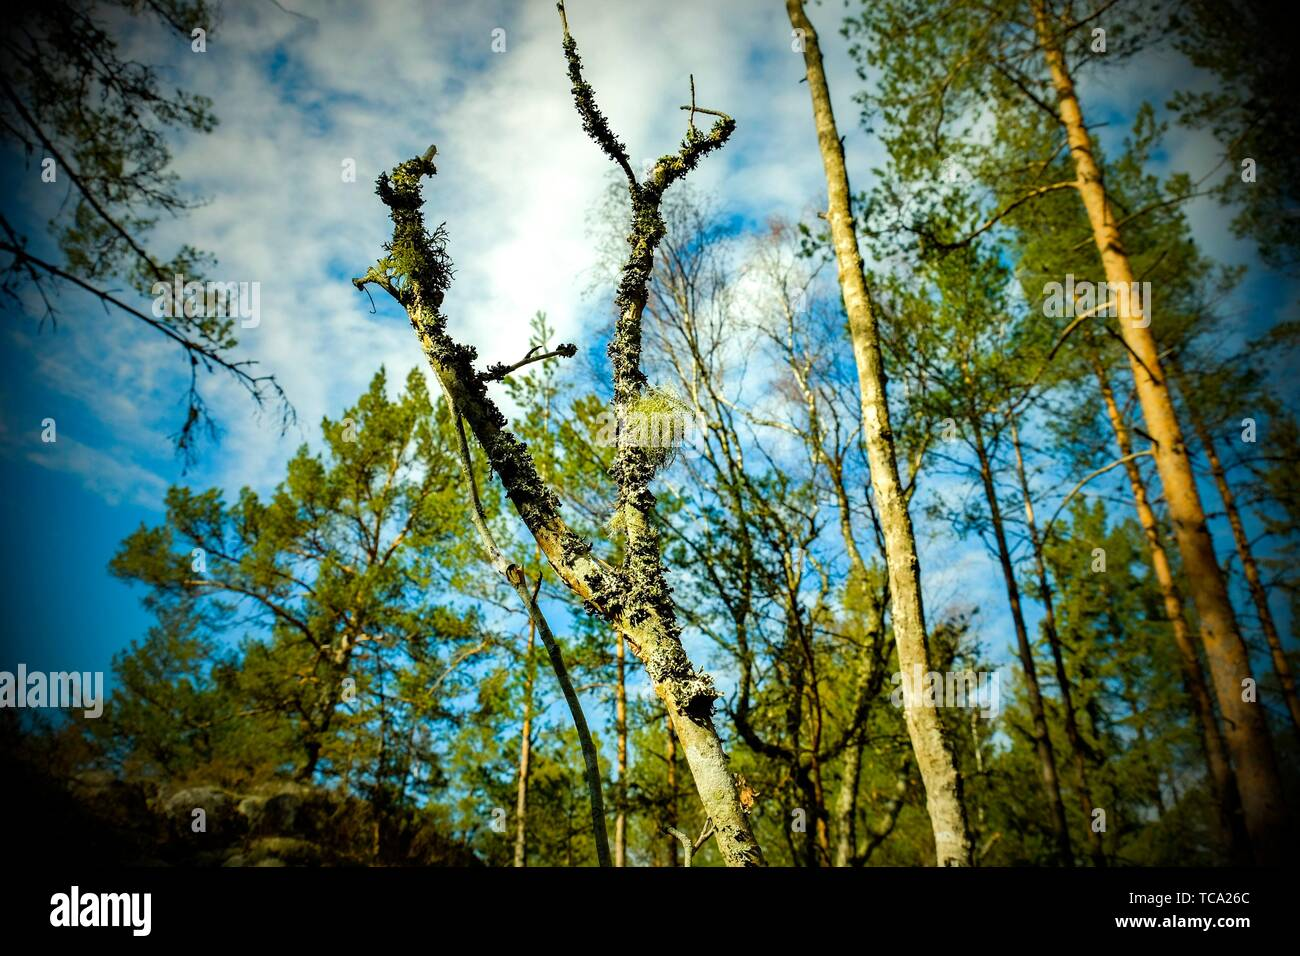 Typical forest vegetation of Sweden. - Stock Image